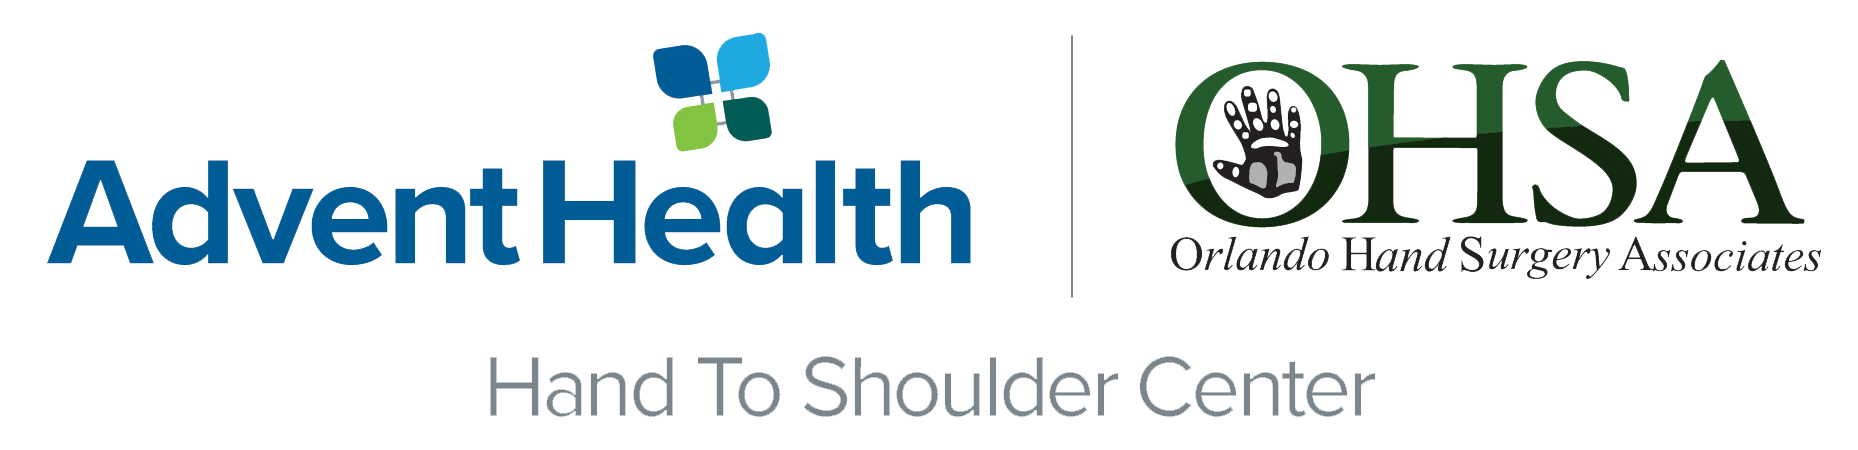 Hand to Shoulder Center | AdventHealth Orthopedic Institute